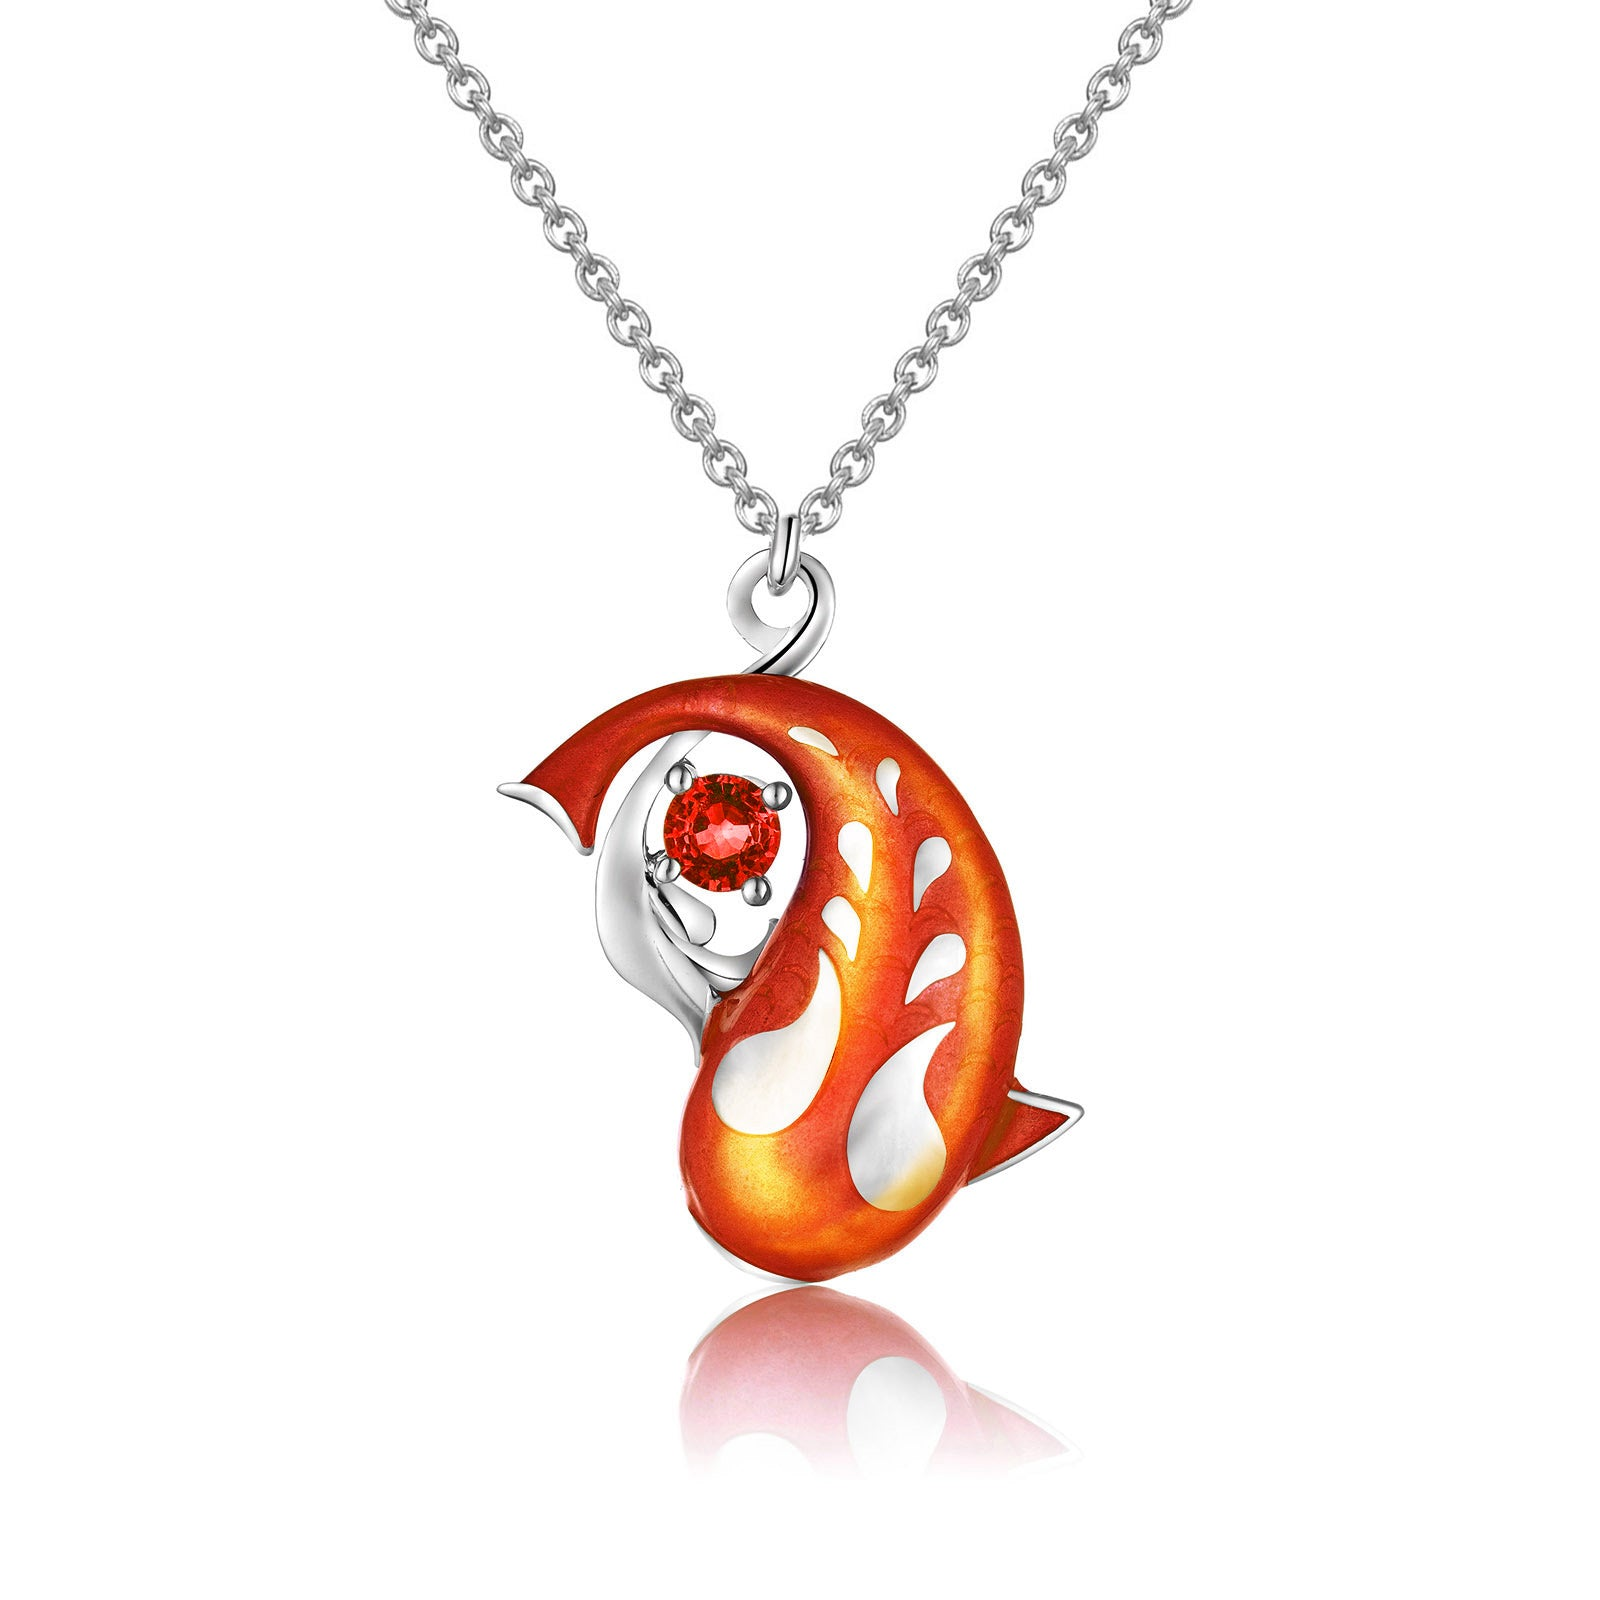 Zen Koi Necklace | Sterling Silver + Orangy-red Epoxy Enamel